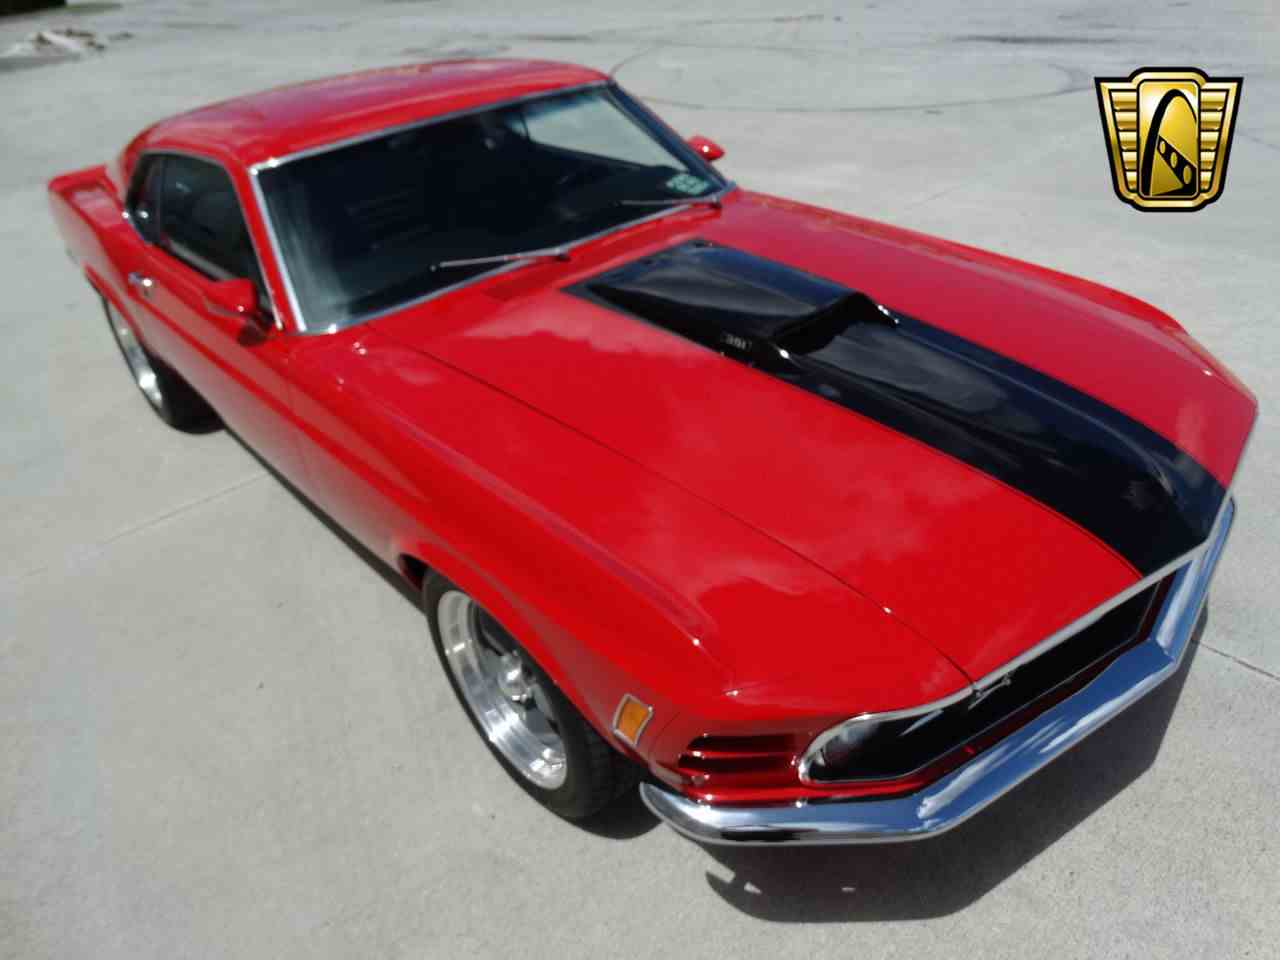 Large Picture of Classic 1970 Mustang located in Coral Springs Florida - $60,000.00 - LG4A